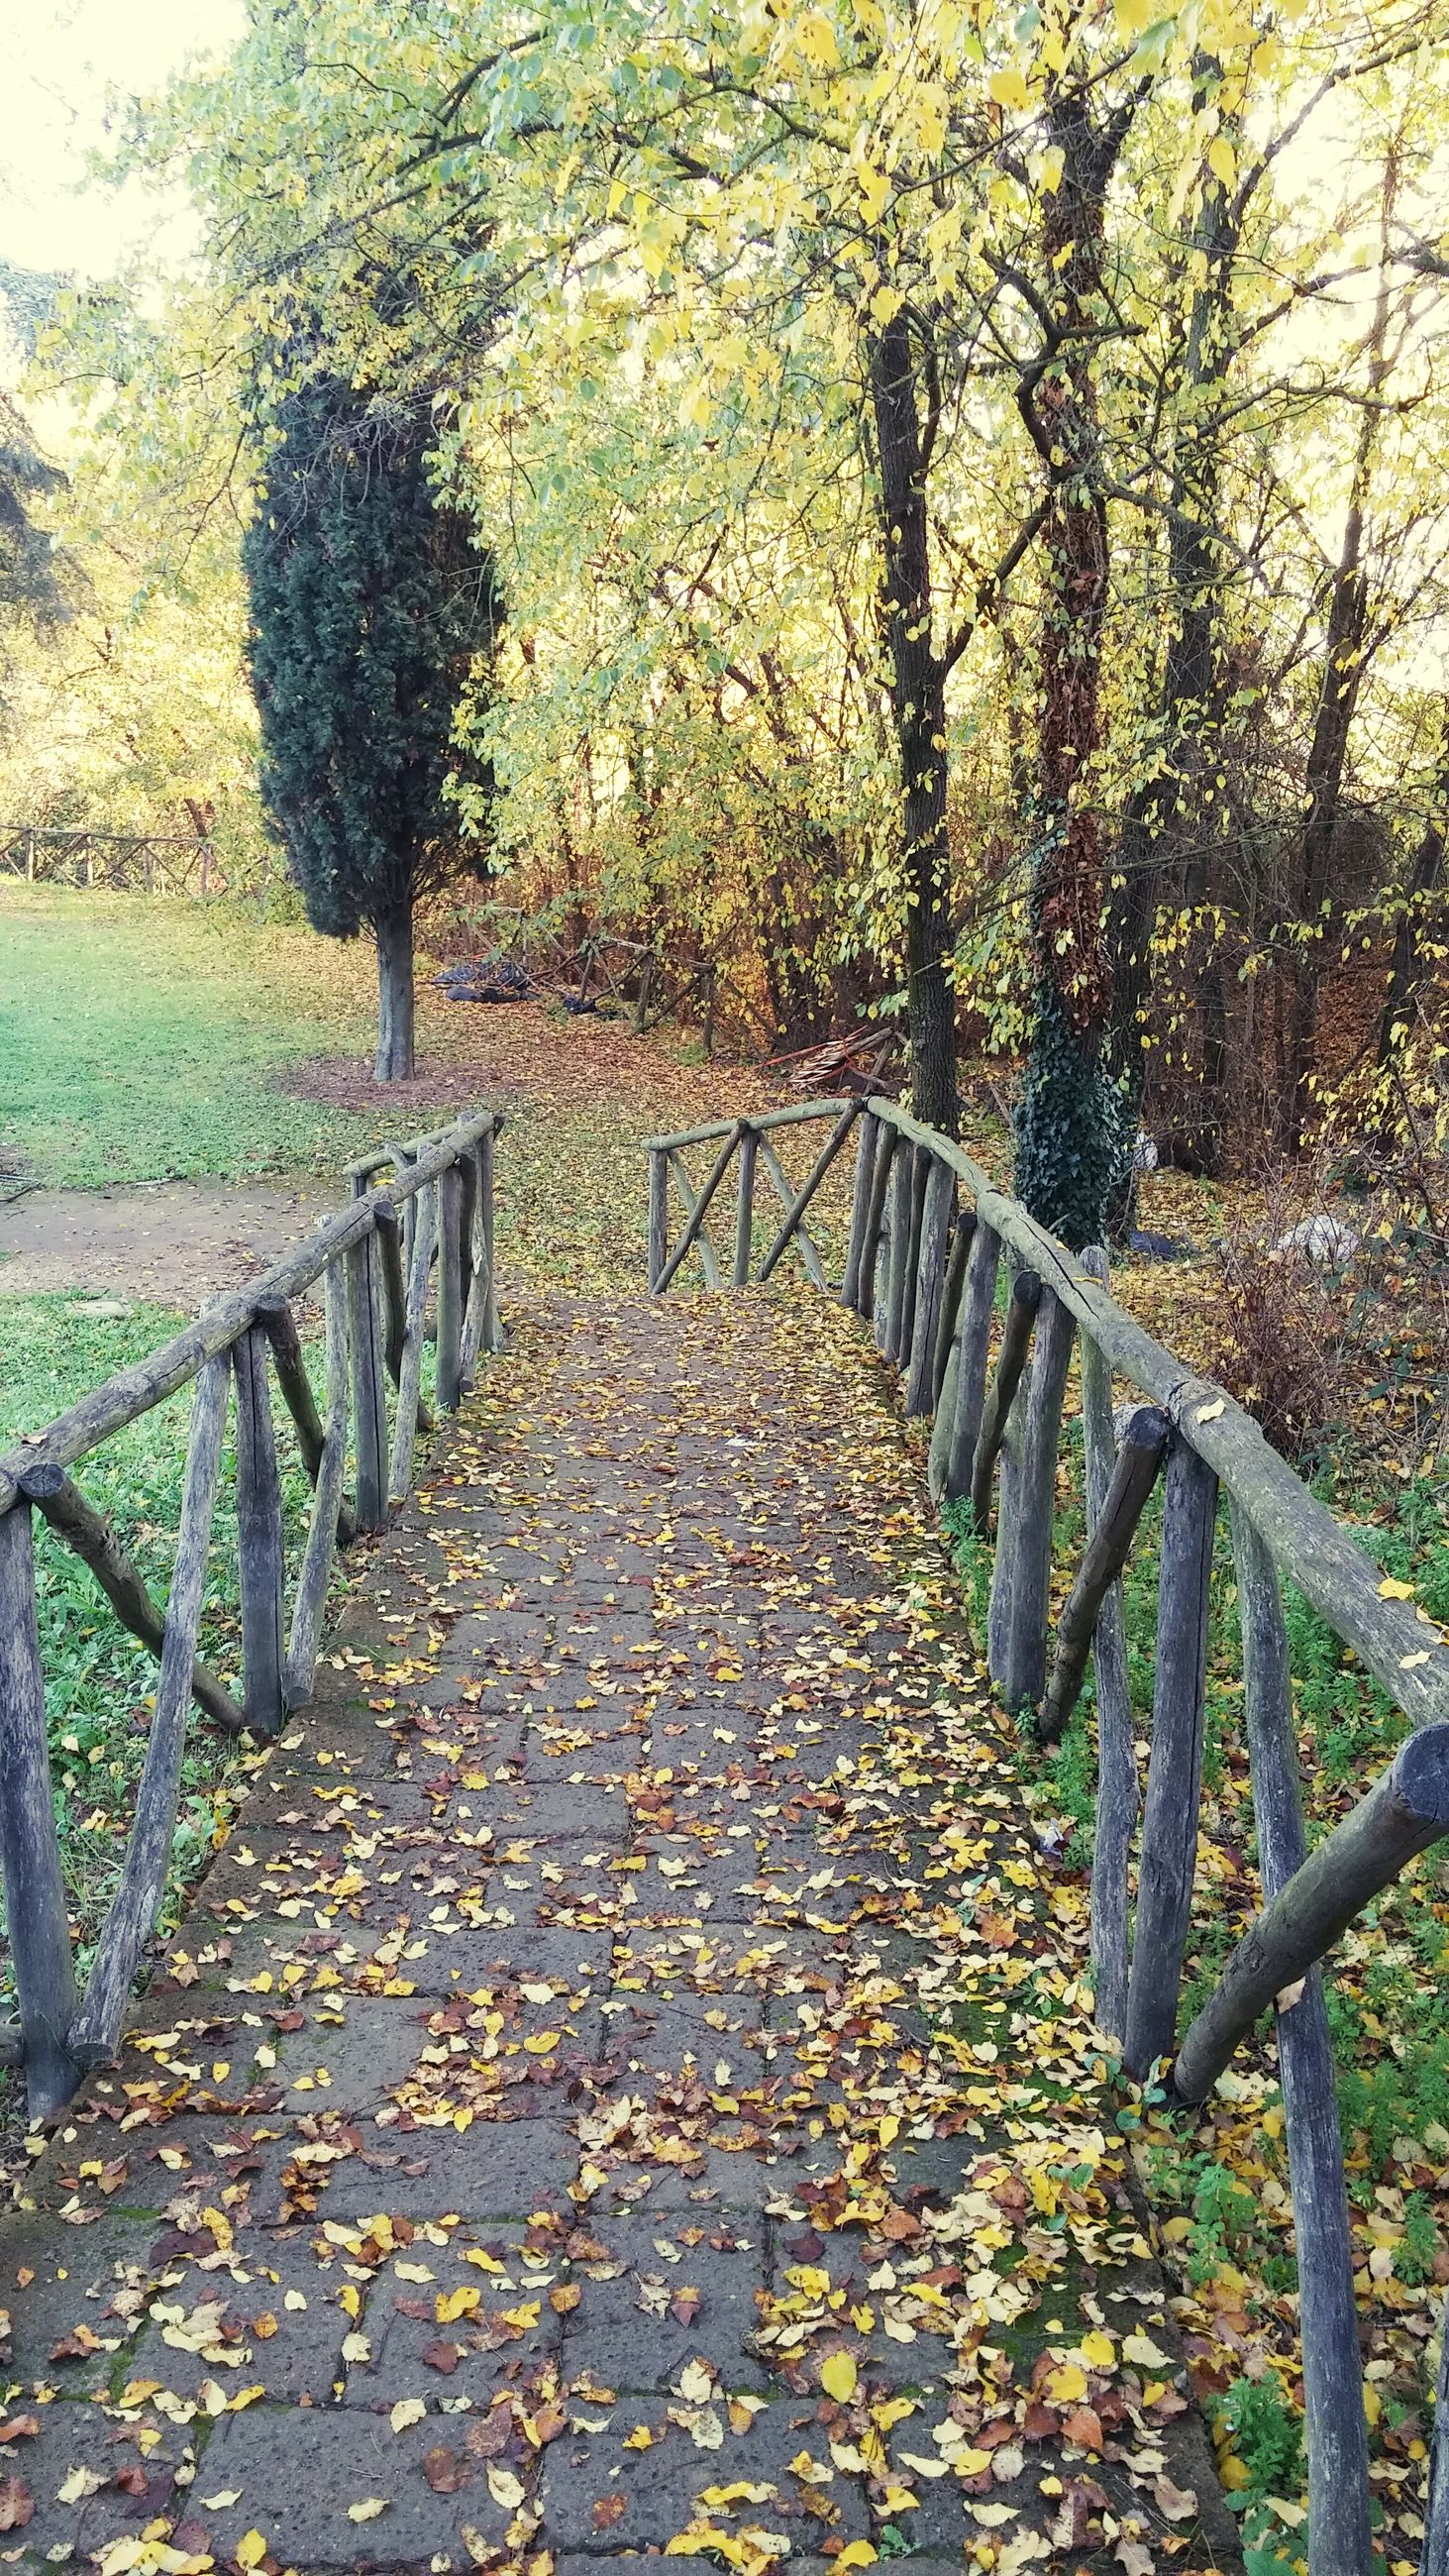 the way forward, tree, diminishing perspective, tranquility, railing, autumn, growth, nature, vanishing point, leaf, footbridge, footpath, change, tranquil scene, walkway, wood - material, pathway, beauty in nature, park - man made space, branch